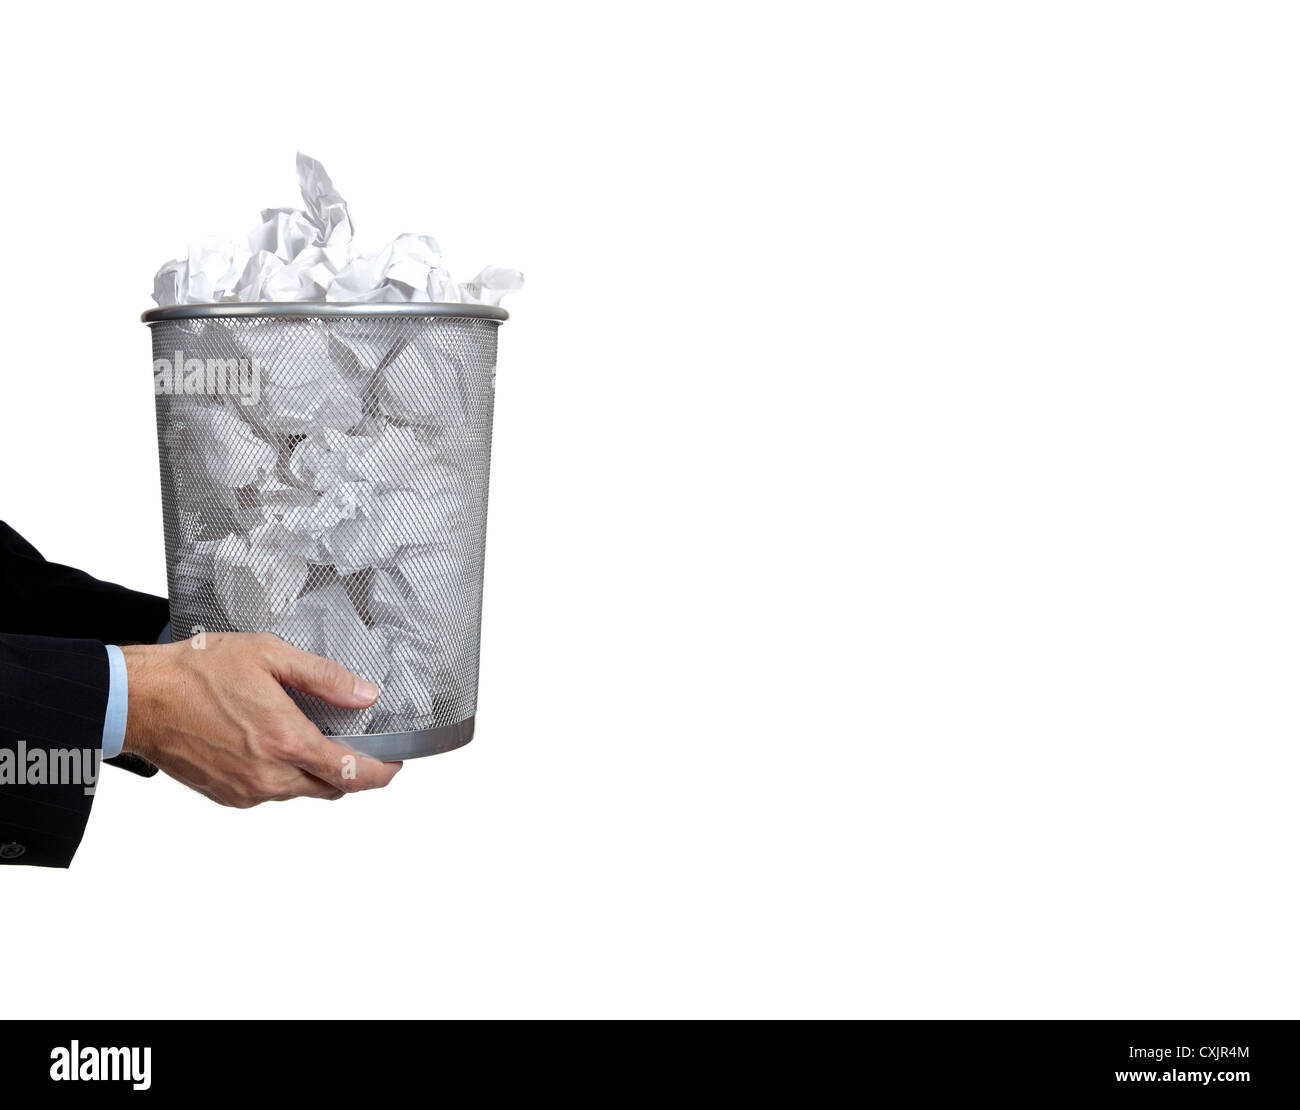 Business man's hands holding a wire mesh trash can with crumpled paper in it on a white background with copy - Stock Image